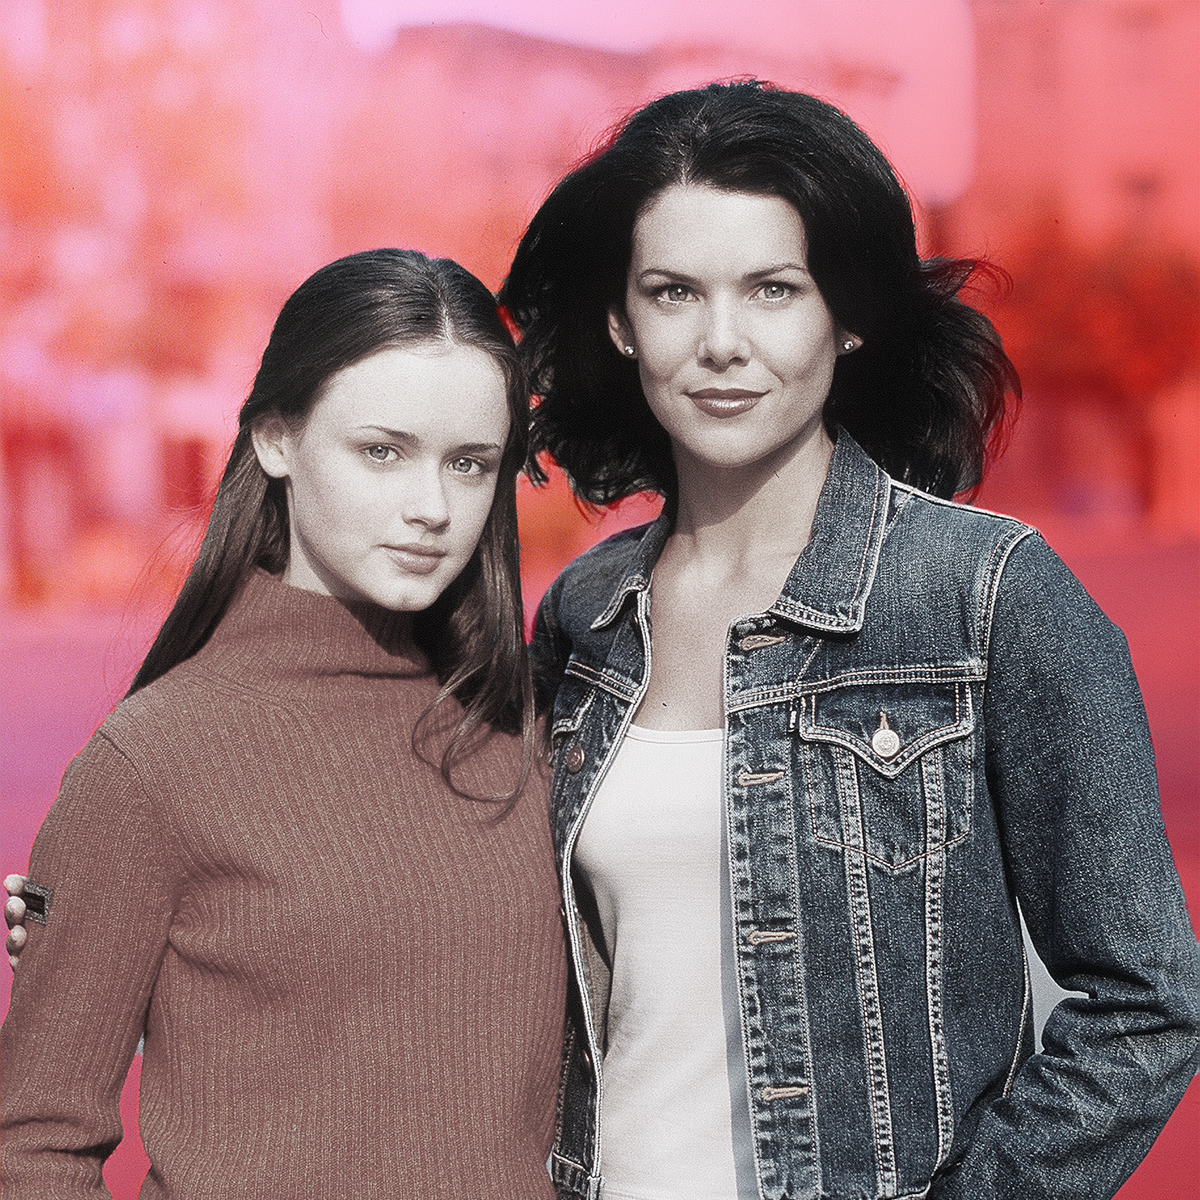 We Ranked All the Gilmore Girls Couples and You're Probably Going to Have Some Thoughts